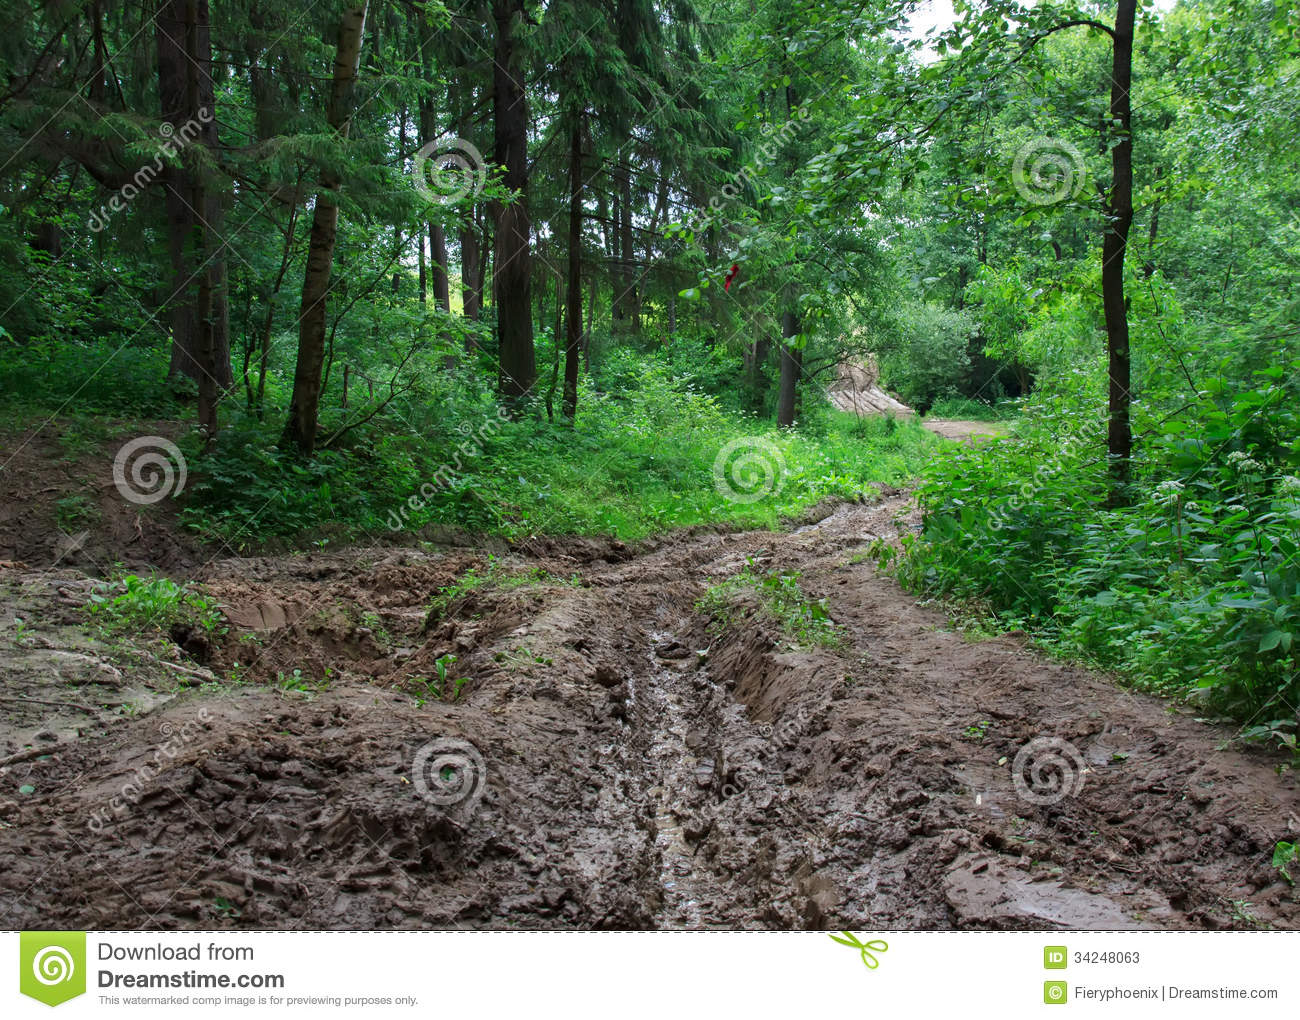 Impassable forest road of mud and clay